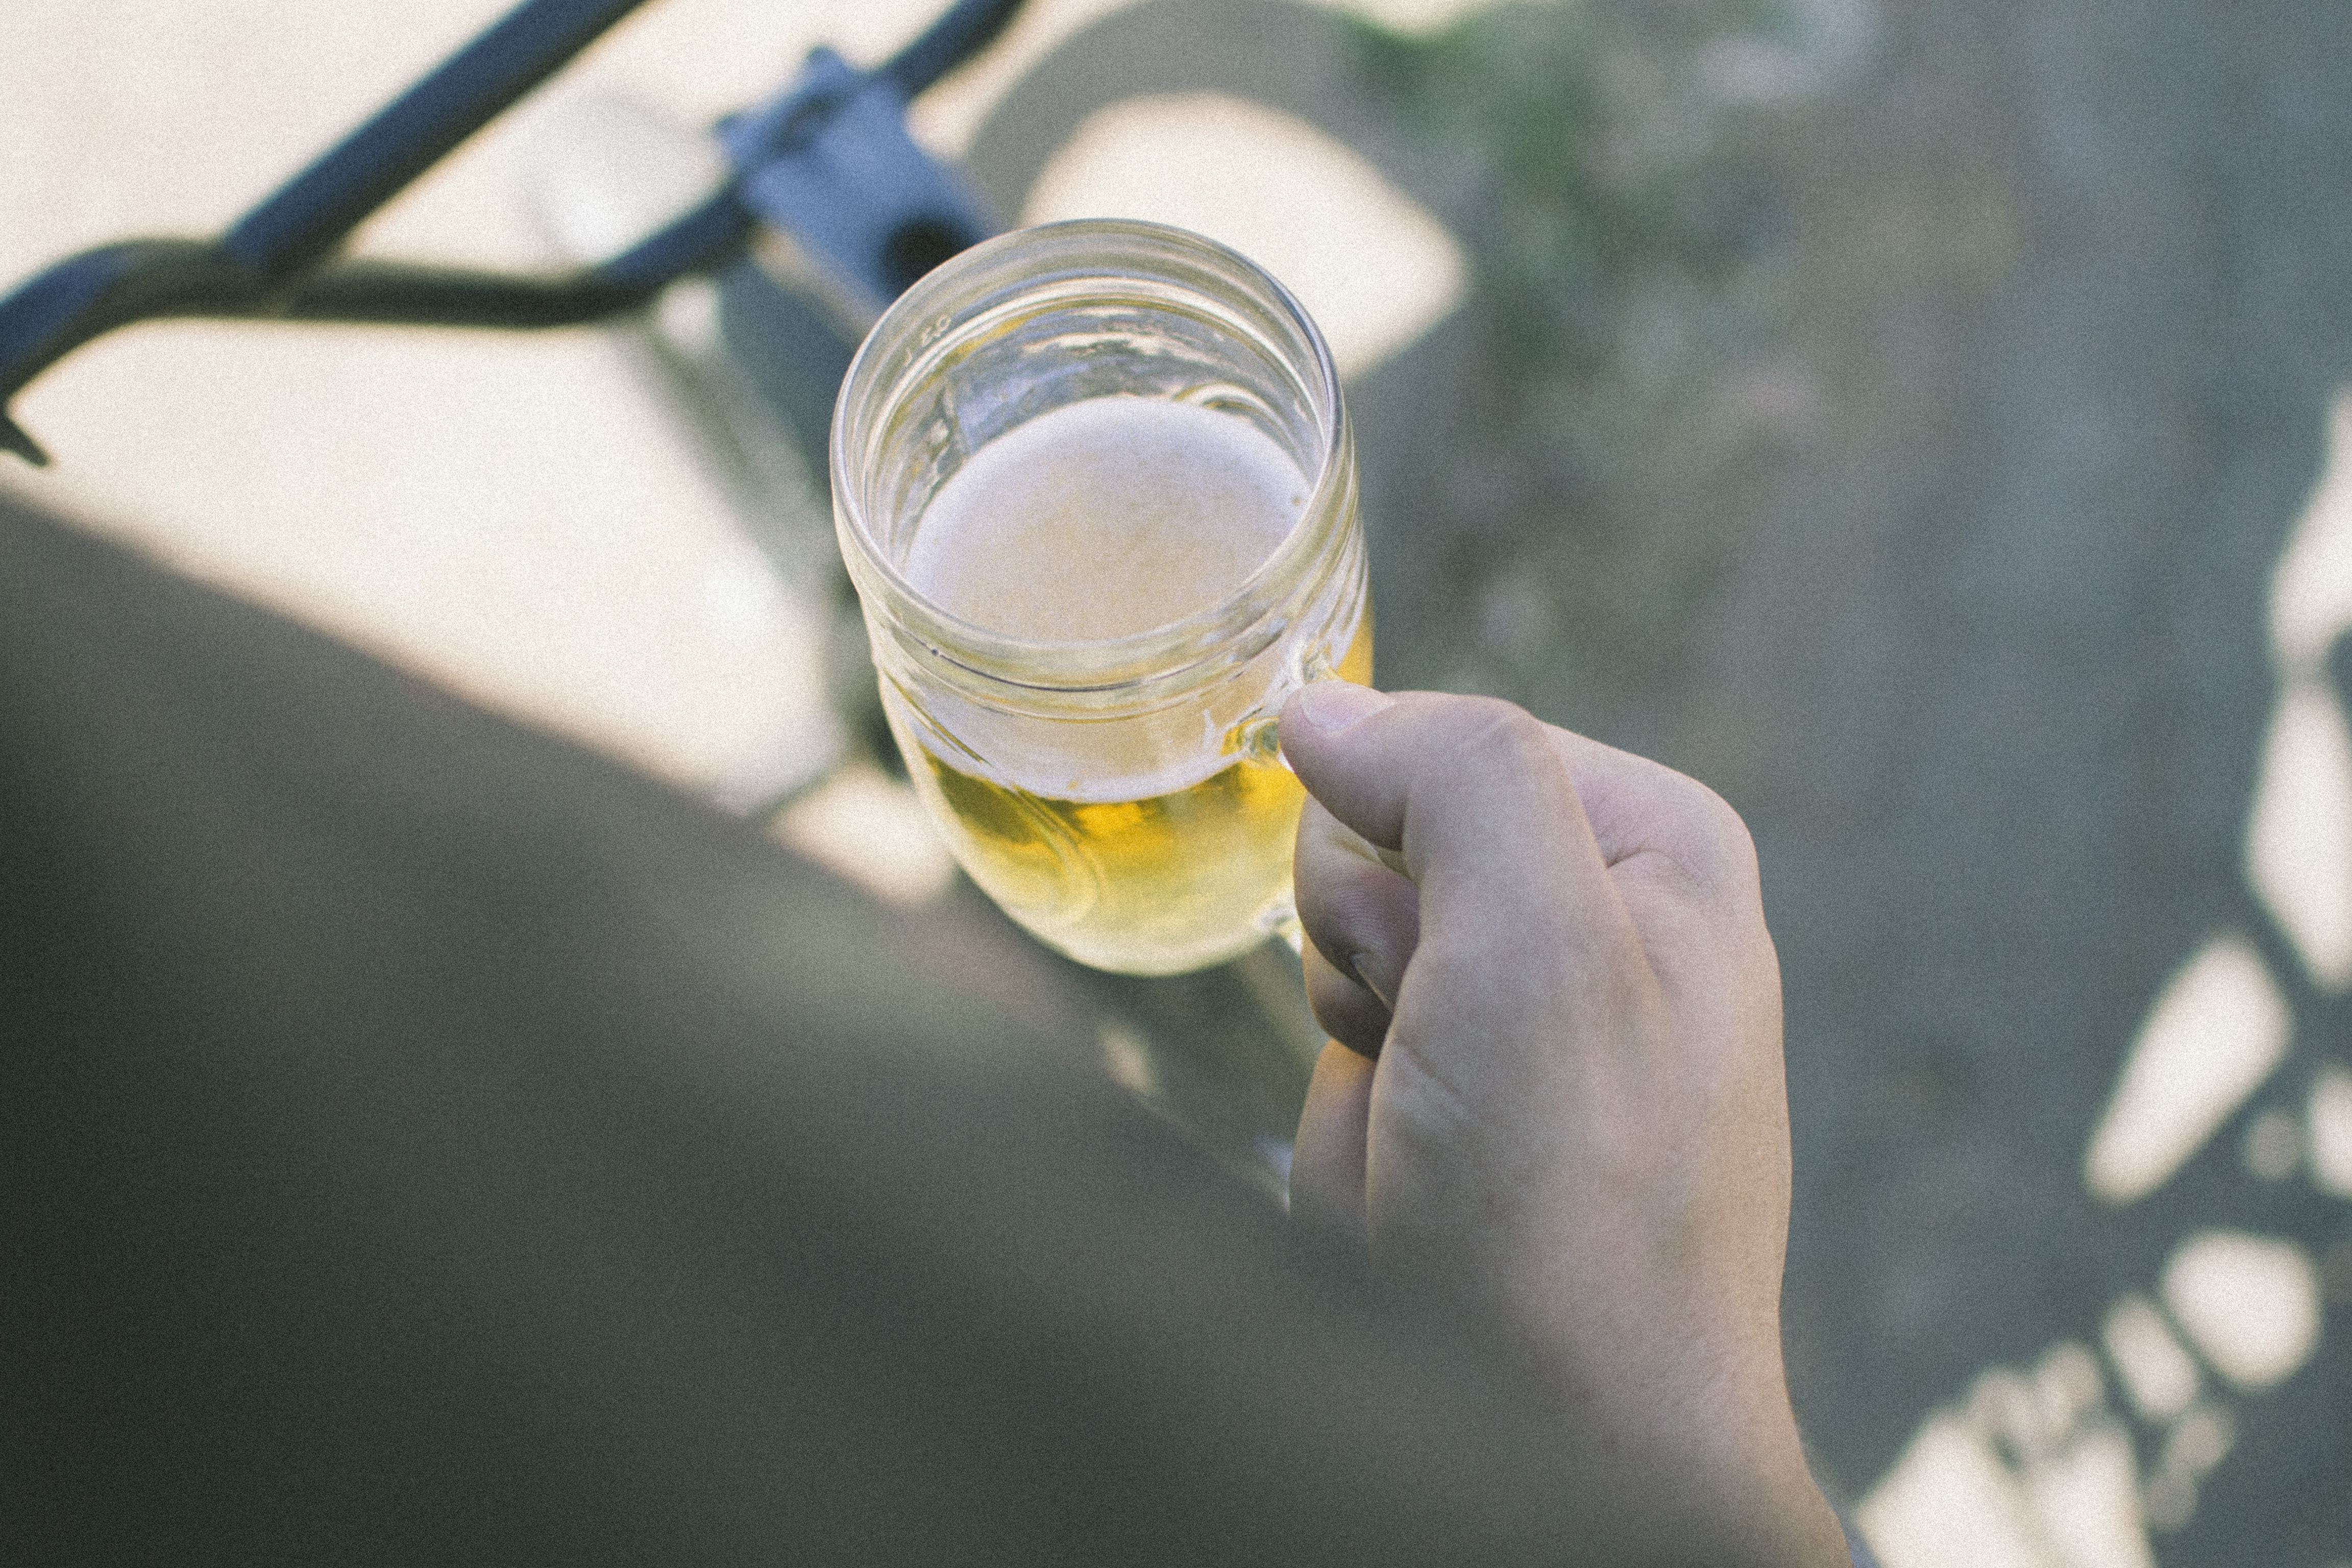 A person holding a glass mug of beer